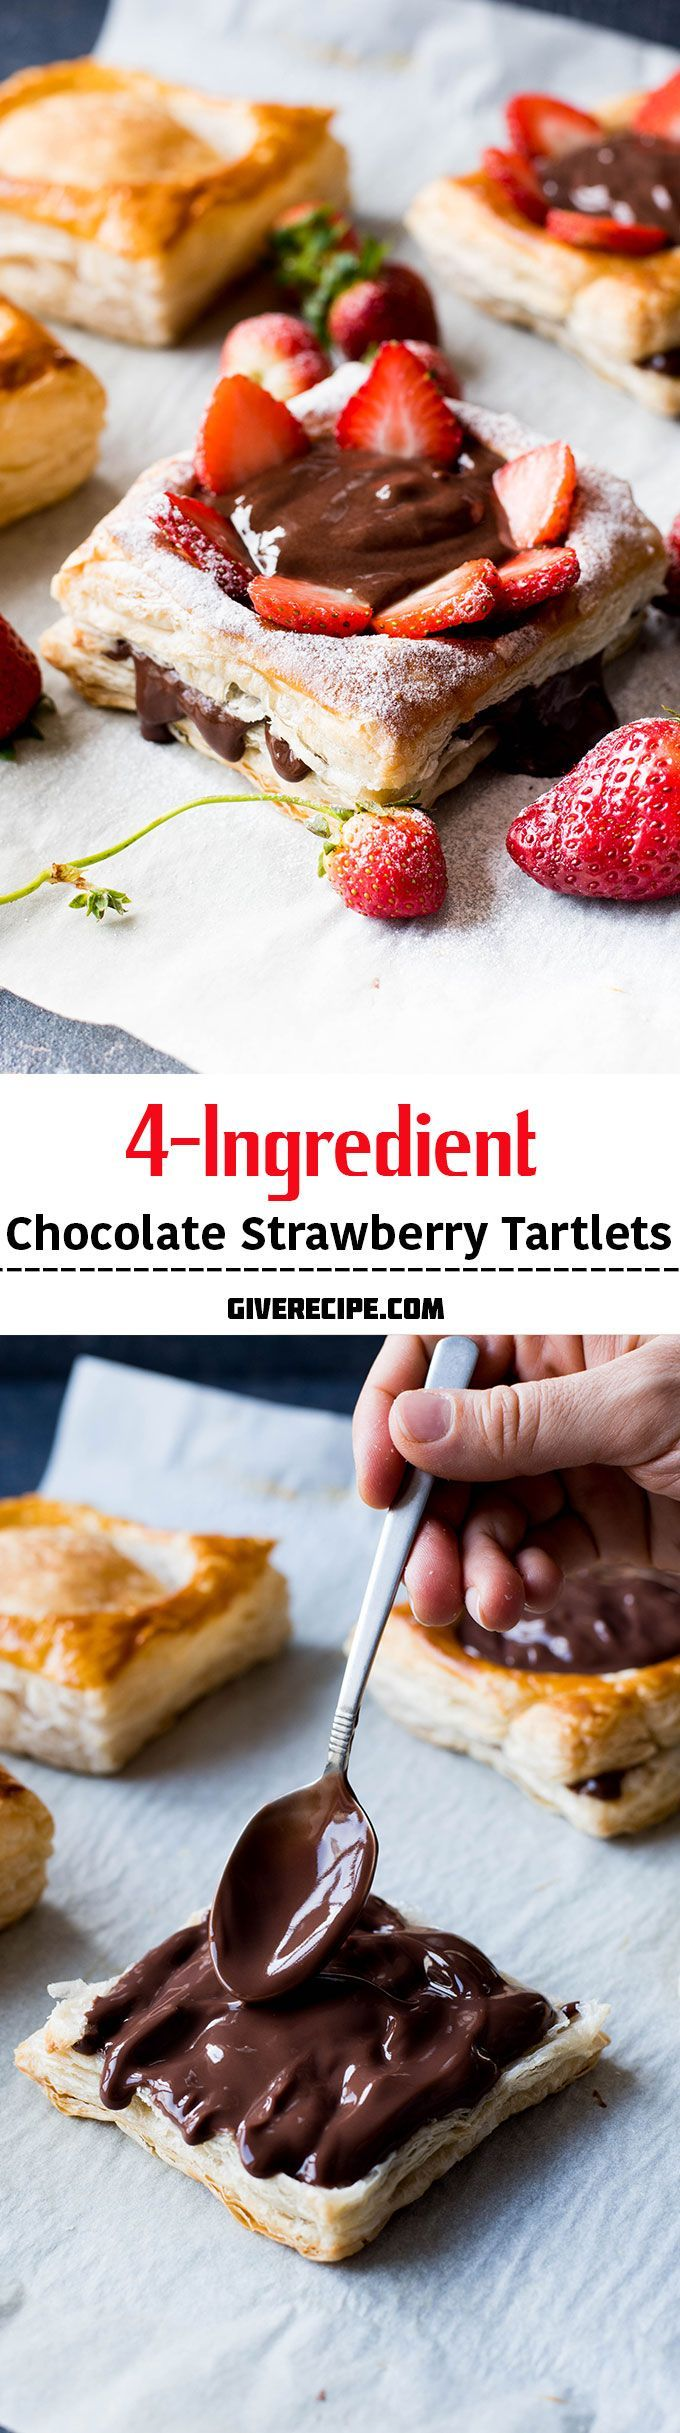 4-Ingredient Chocolate Strawberry Tartlets are ready just in 30 minutes! These are perfect for any occasions! Get admired with little work!